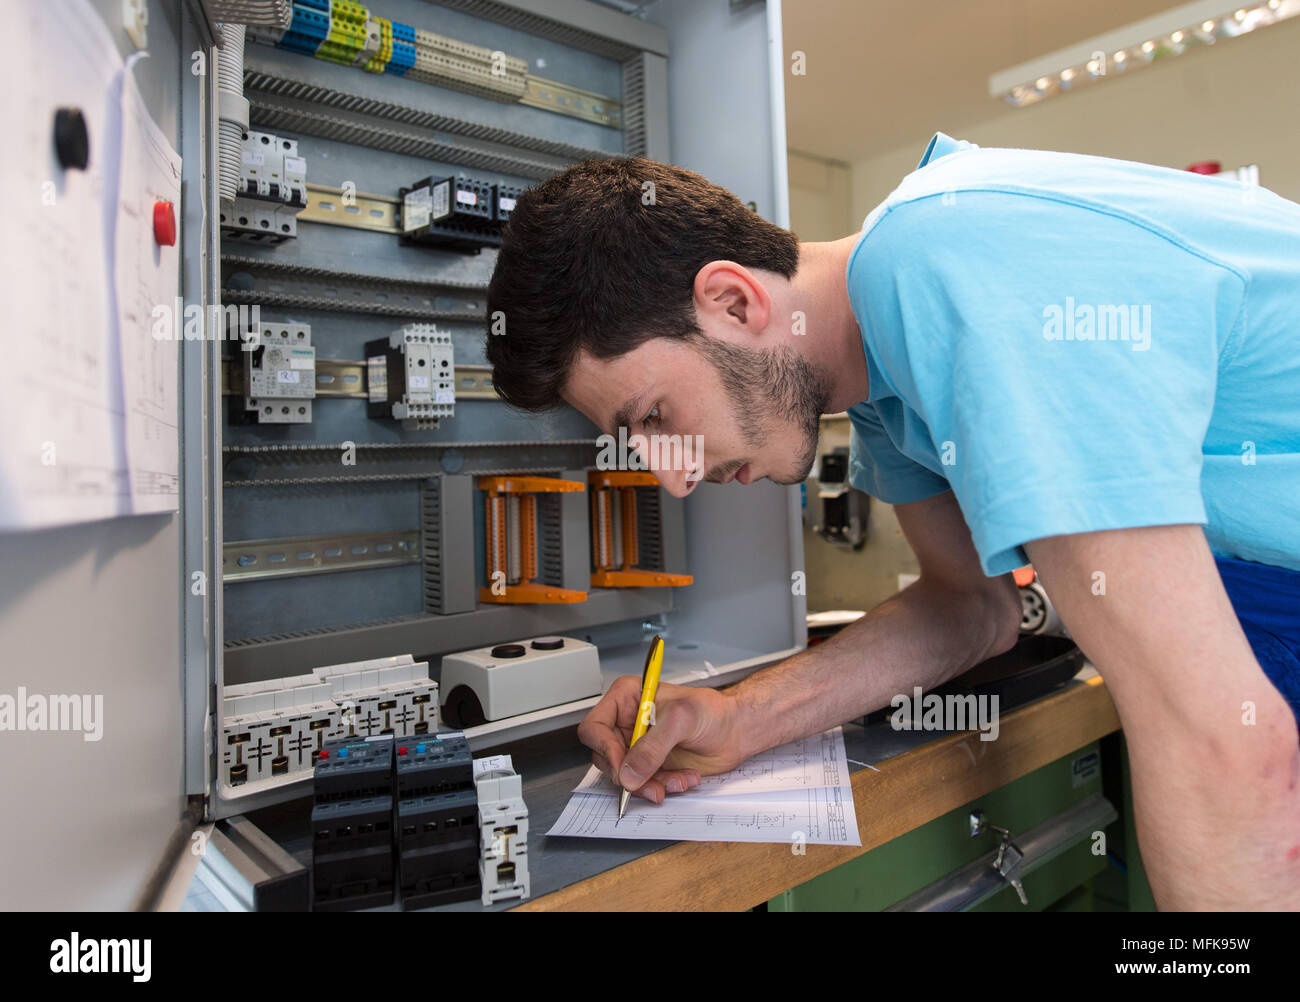 26 April 2016 Germany Leipzig Ahmad 20 From Syria Working On Wiring Enclosure In An Electrical At The Training Centre Of Siemens Professional Education A